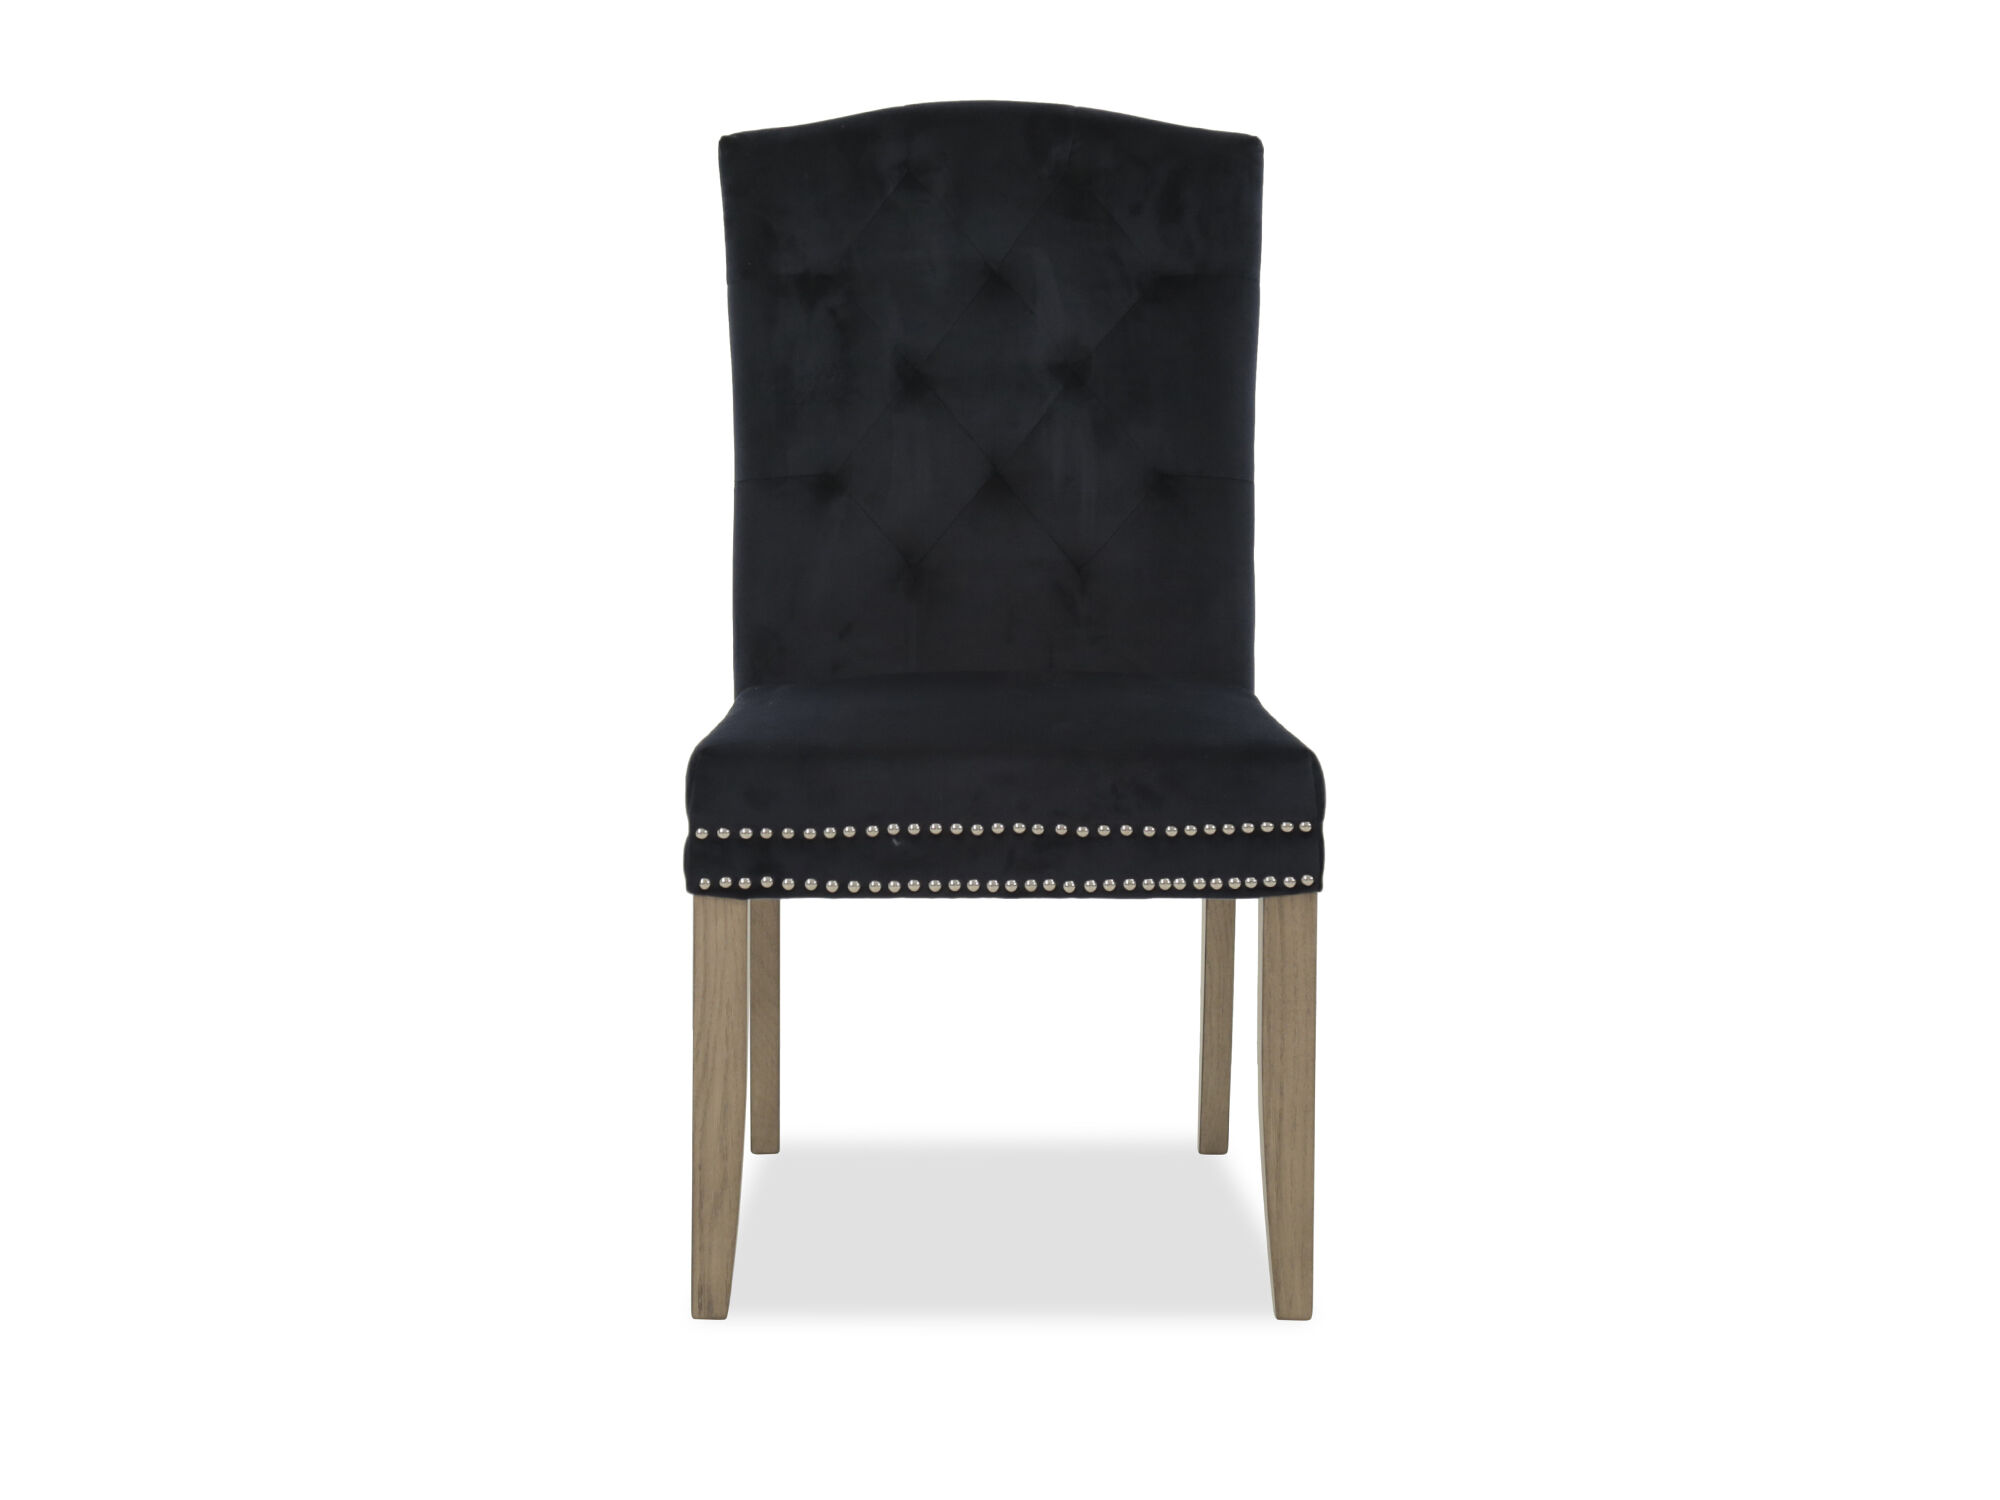 upholstered chair with nailhead trim neutral posture icon dining in black mathis brothers furniture